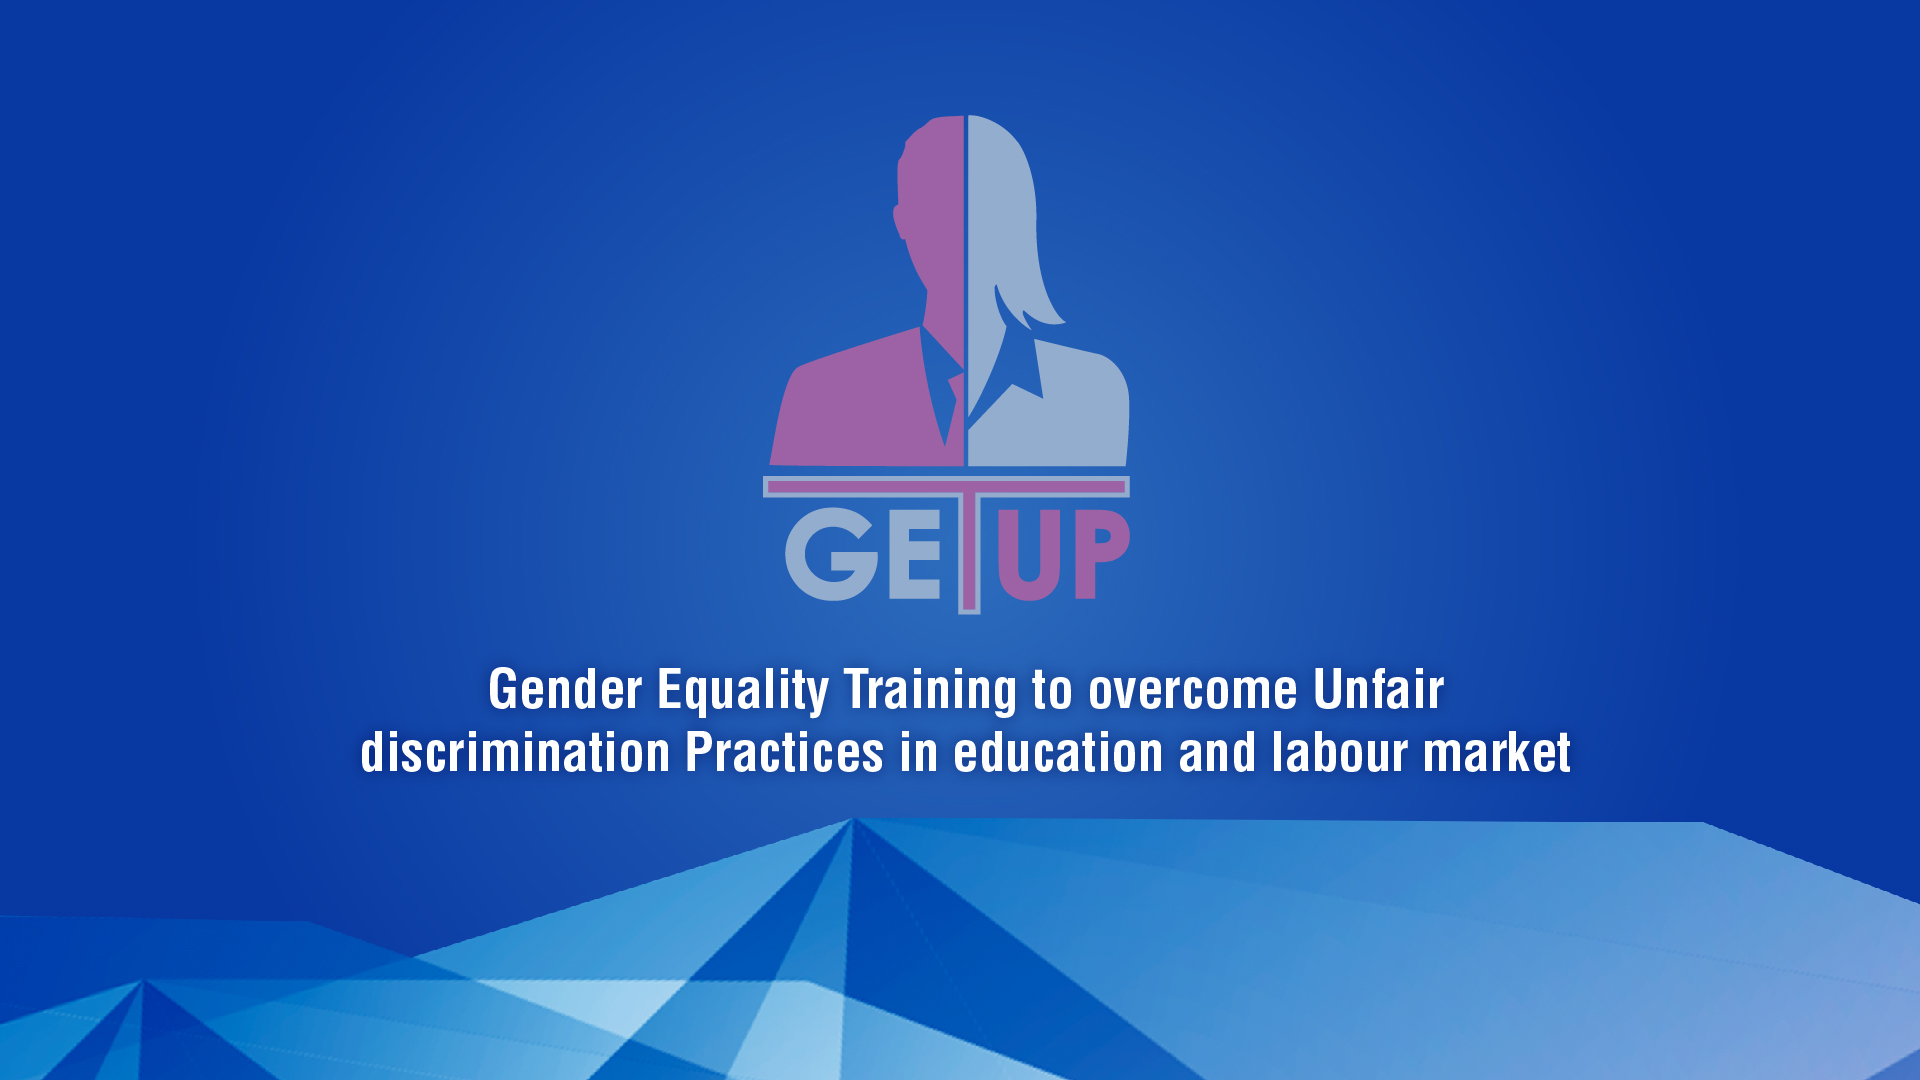 Gender Equality Training